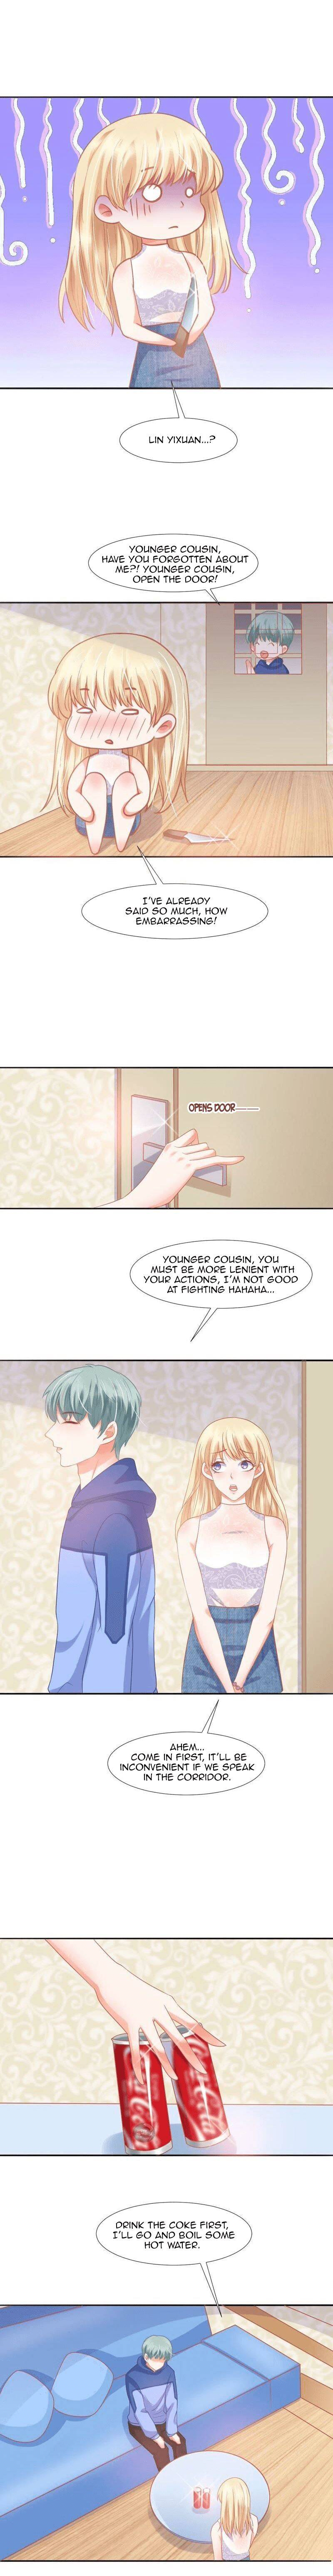 Prince Charming Has His Eyes On Me - chapter 58 - #3